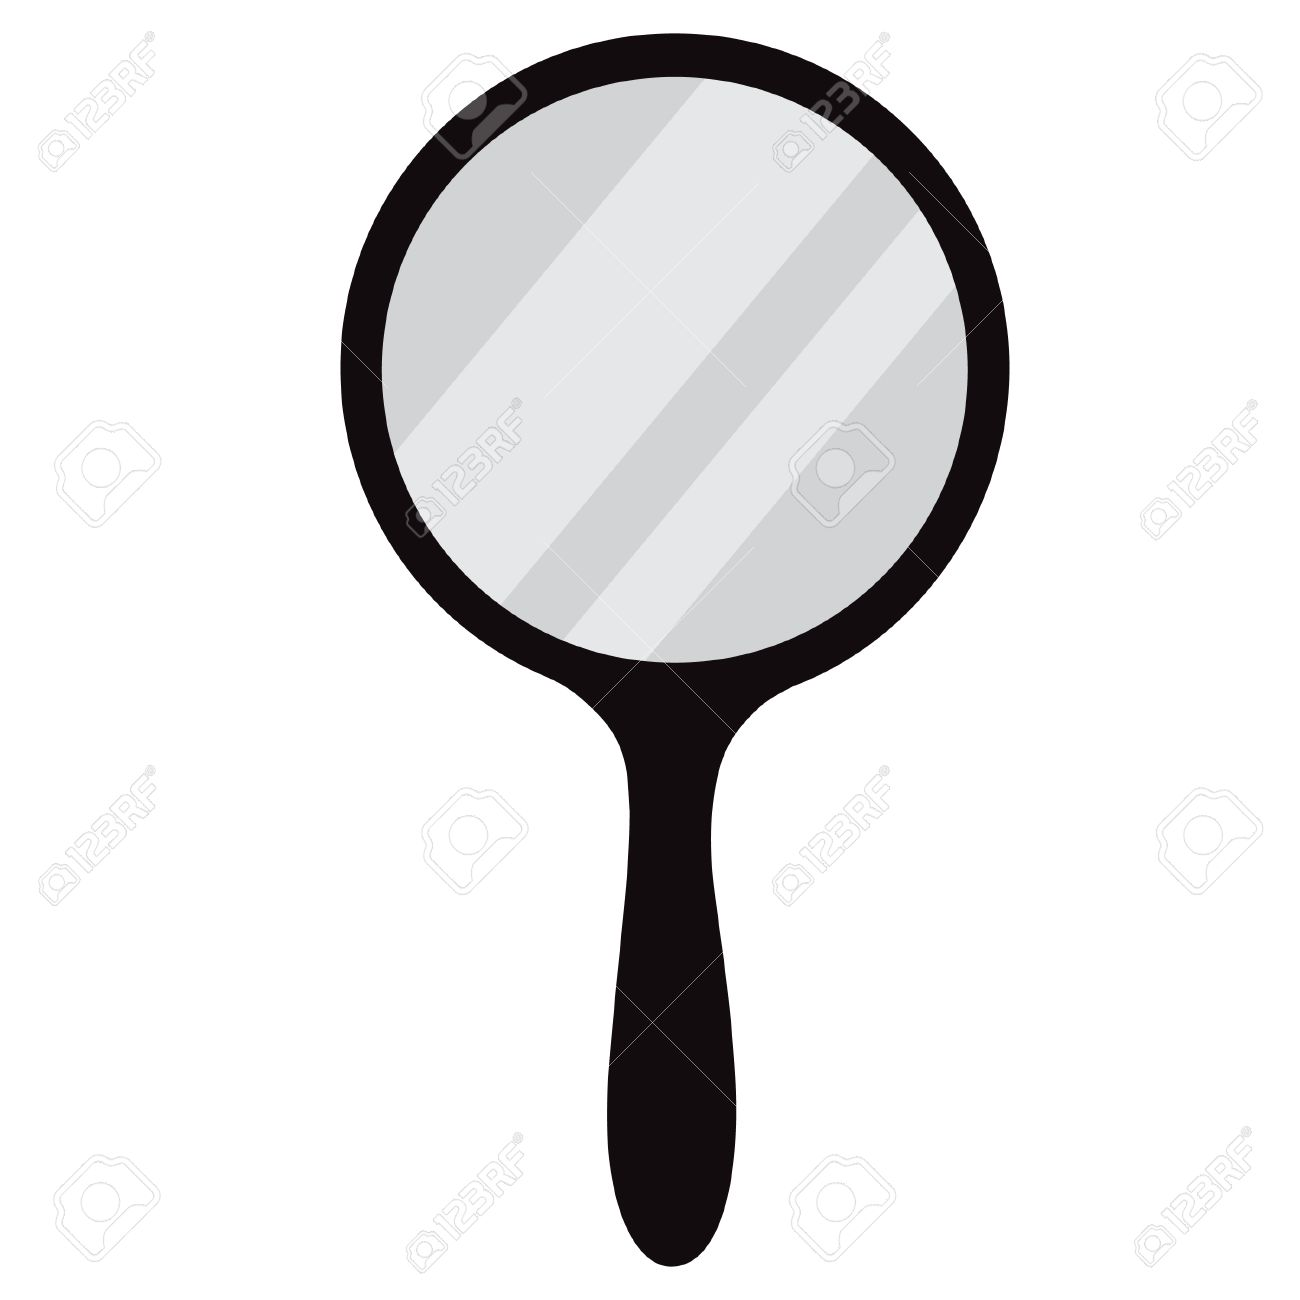 hand mirror vector. round, black hand mirror vector isolated. icon stock - 44050336 i